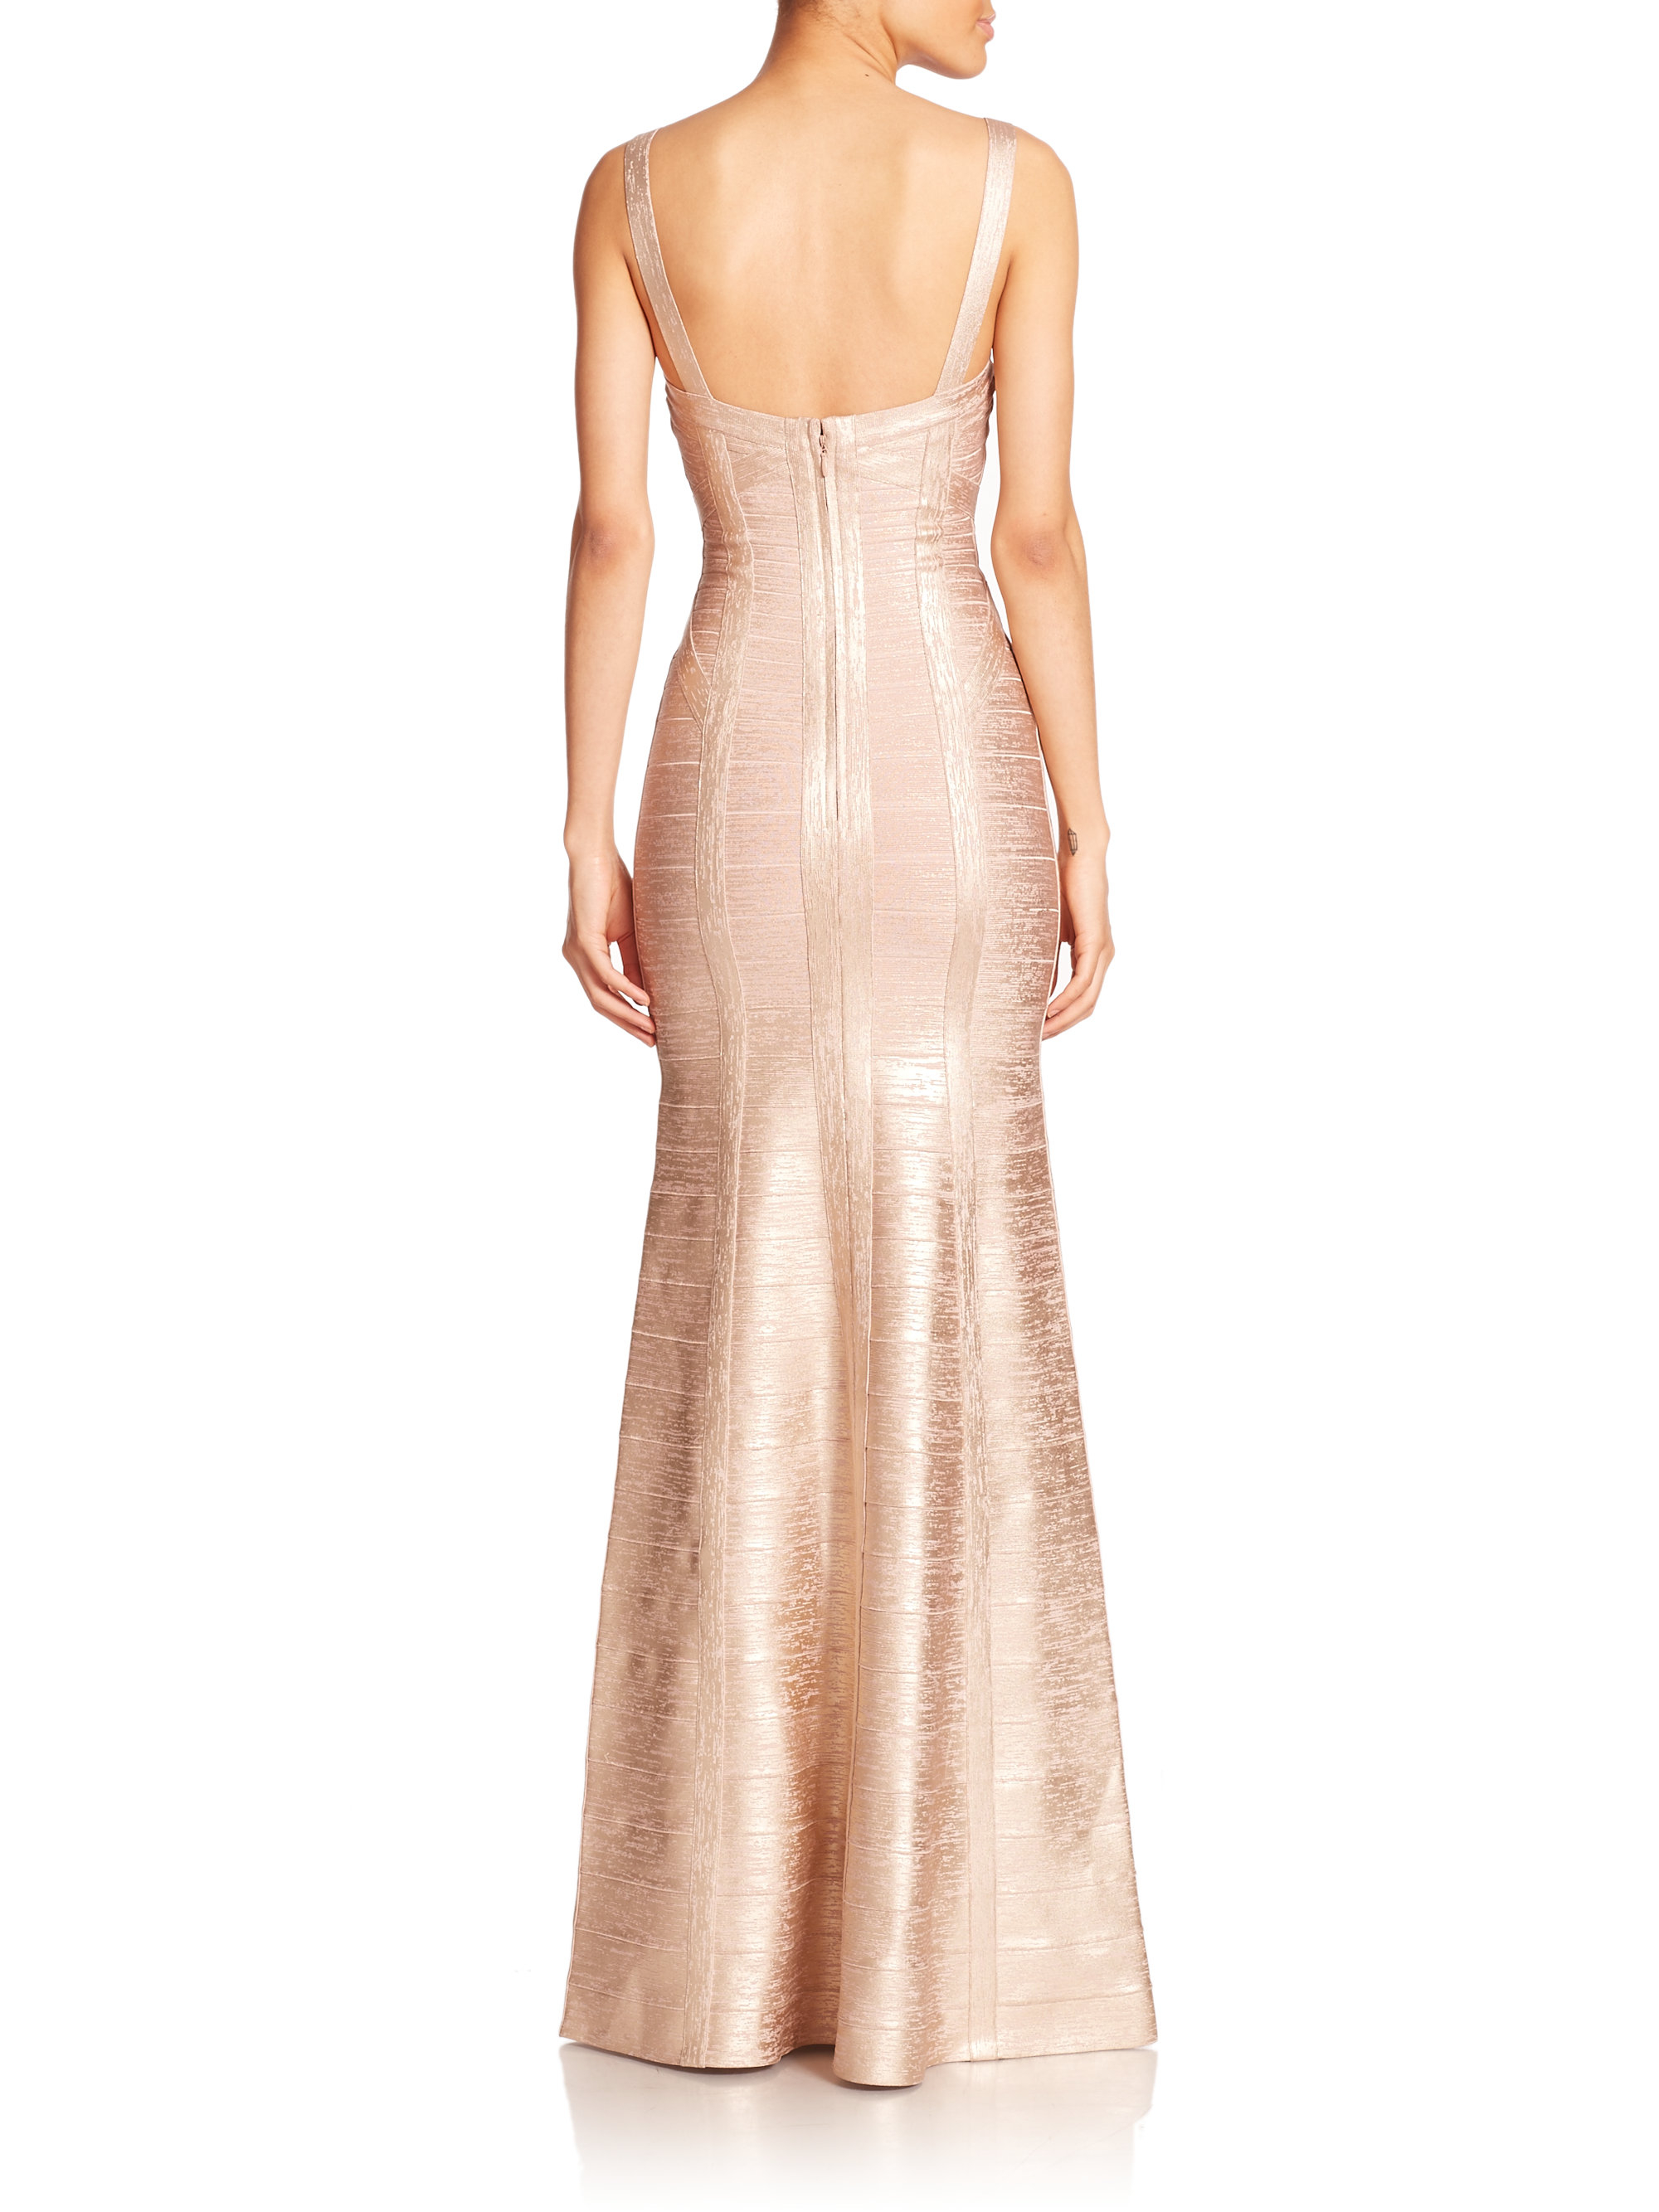 0e6735ade21c Gallery. Previously sold at: Saks Fifth Avenue · Women's Herve Leger Bandage